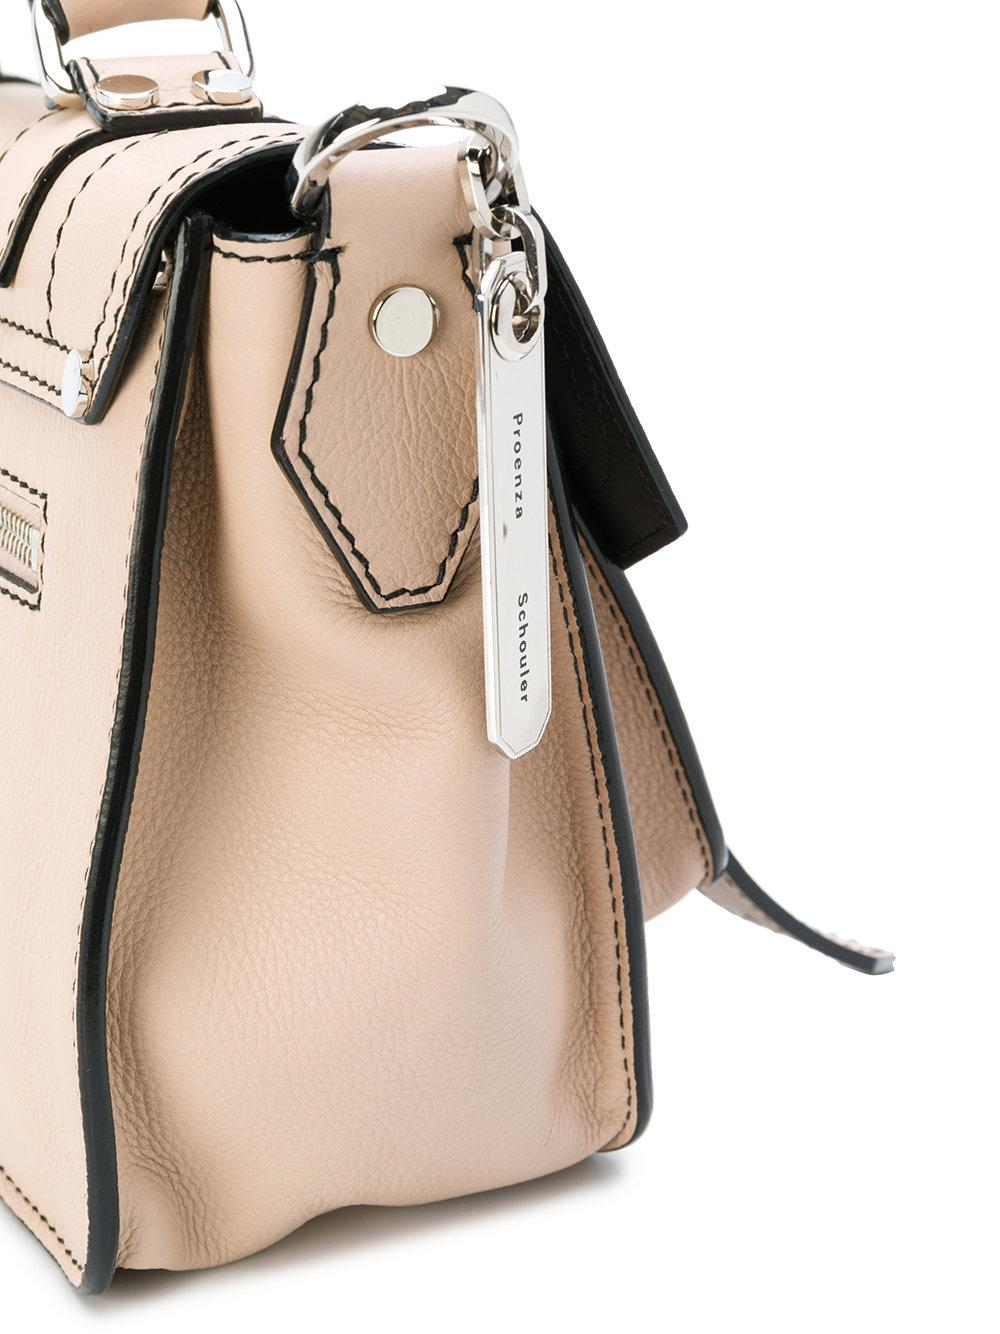 Proenza Schouler Leather Ps1 Tiny Crossbody Bag in Natural